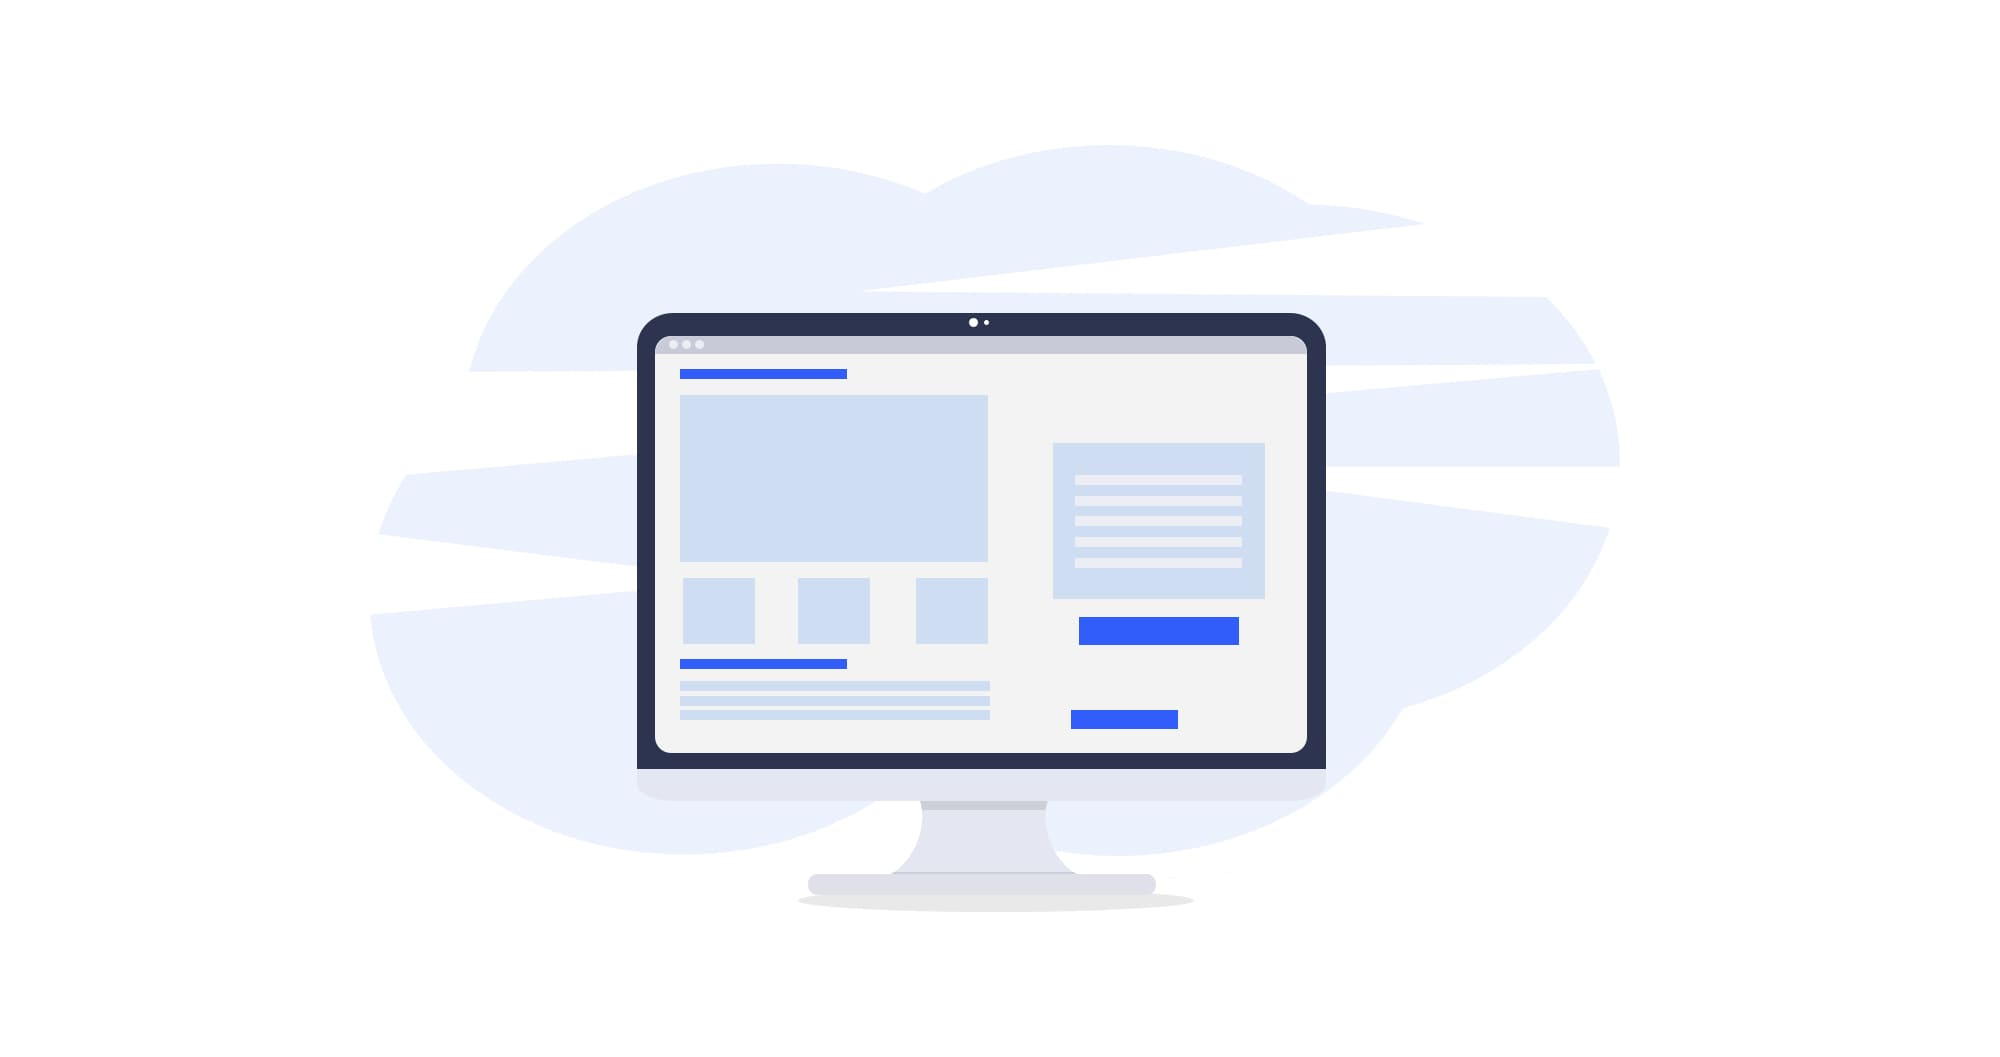 You can't have a successful business without a converting landing page - it's where your customers show their interest in your business by signing up to your newsletter or buying your product. Learn how to create a landing page.